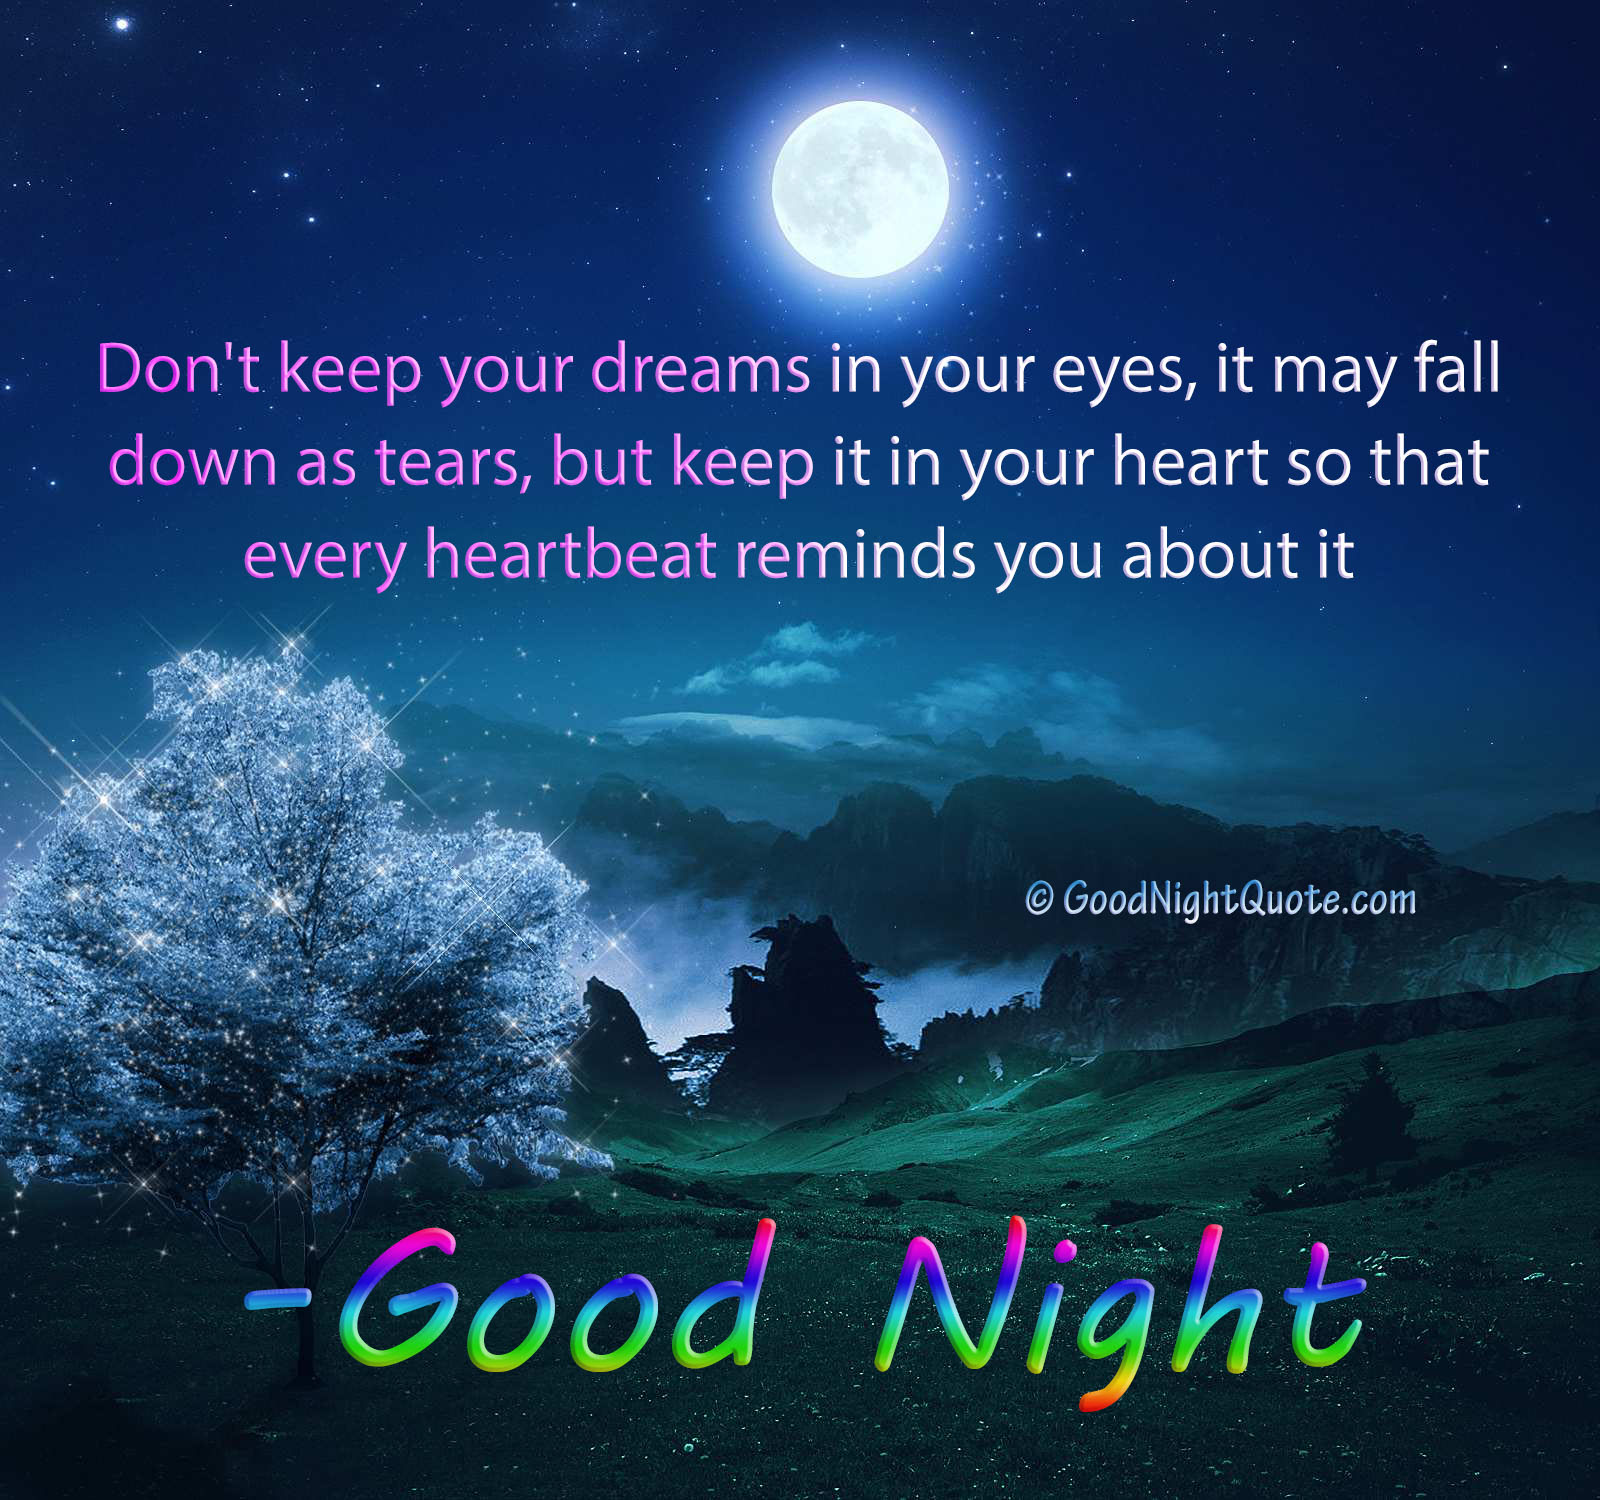 Good Night Quotes Keep Your Dreams In Your Heart Good Night